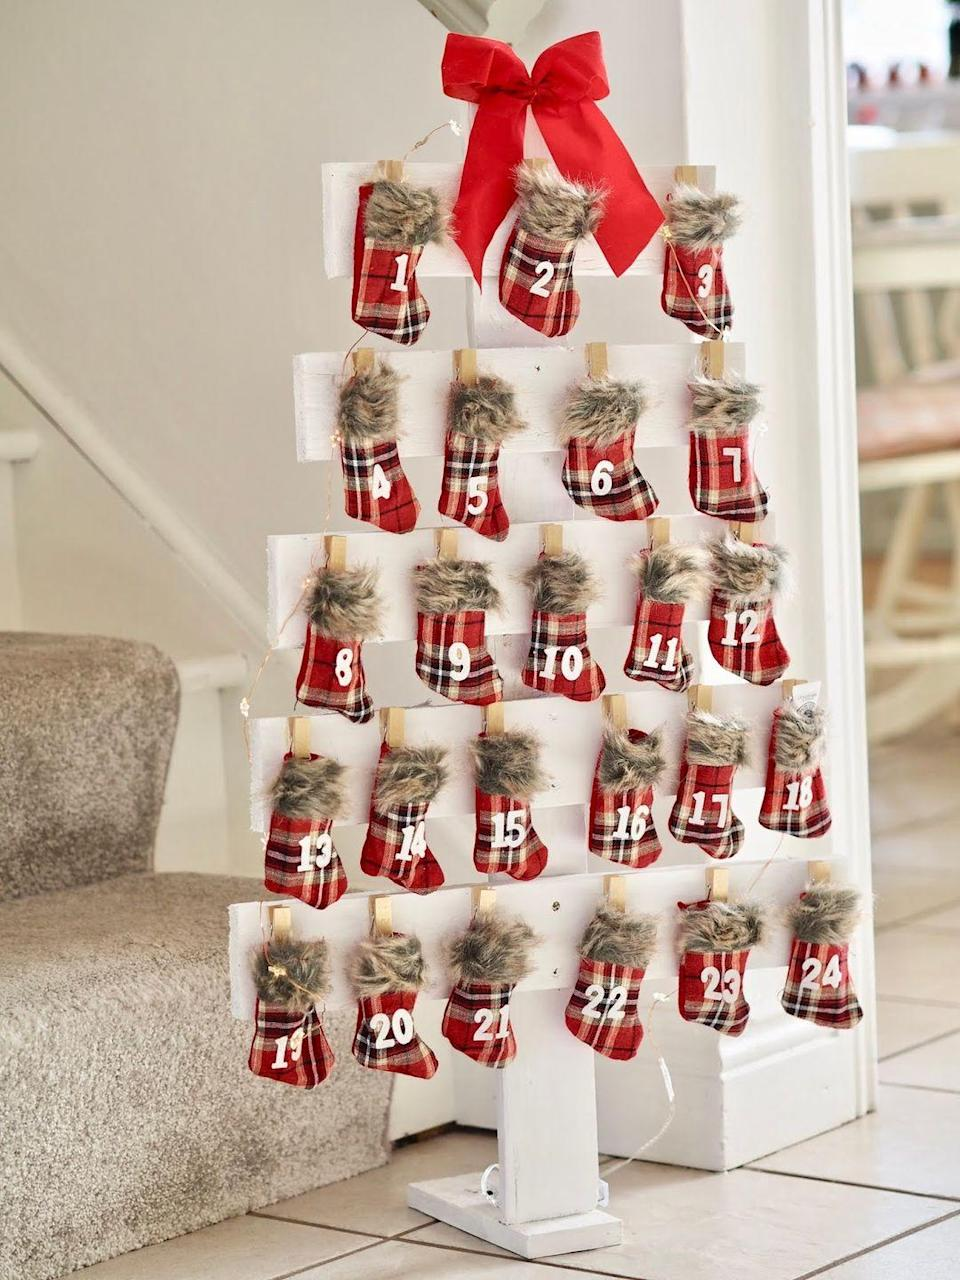 """<p>Count down the days to Christmas in style by making your old pallet into an advent calendar. We guarantee it will look so great that your guests will swear you bought it.</p><p><strong>Get the tutorial at <a href=""""https://www.daintydressdiaries.com/2018/11/diy-christmas-tree-advent-calendar-from-palette-wood-.html"""" rel=""""nofollow noopener"""" target=""""_blank"""" data-ylk=""""slk:Dainty Dress Diaries"""" class=""""link rapid-noclick-resp"""">Dainty Dress Diaries</a>.</strong></p><p><strong><a class=""""link rapid-noclick-resp"""" href=""""https://www.amazon.com/Apple-Barrel-Acrylic-Assorted-21119/dp/B0018N4P54/?tag=syn-yahoo-20&ascsubtag=%5Bartid%7C10050.g.23322271%5Bsrc%7Cyahoo-us"""" rel=""""nofollow noopener"""" target=""""_blank"""" data-ylk=""""slk:SHOP WHITE PAINT"""">SHOP WHITE PAINT</a><br></strong></p>"""